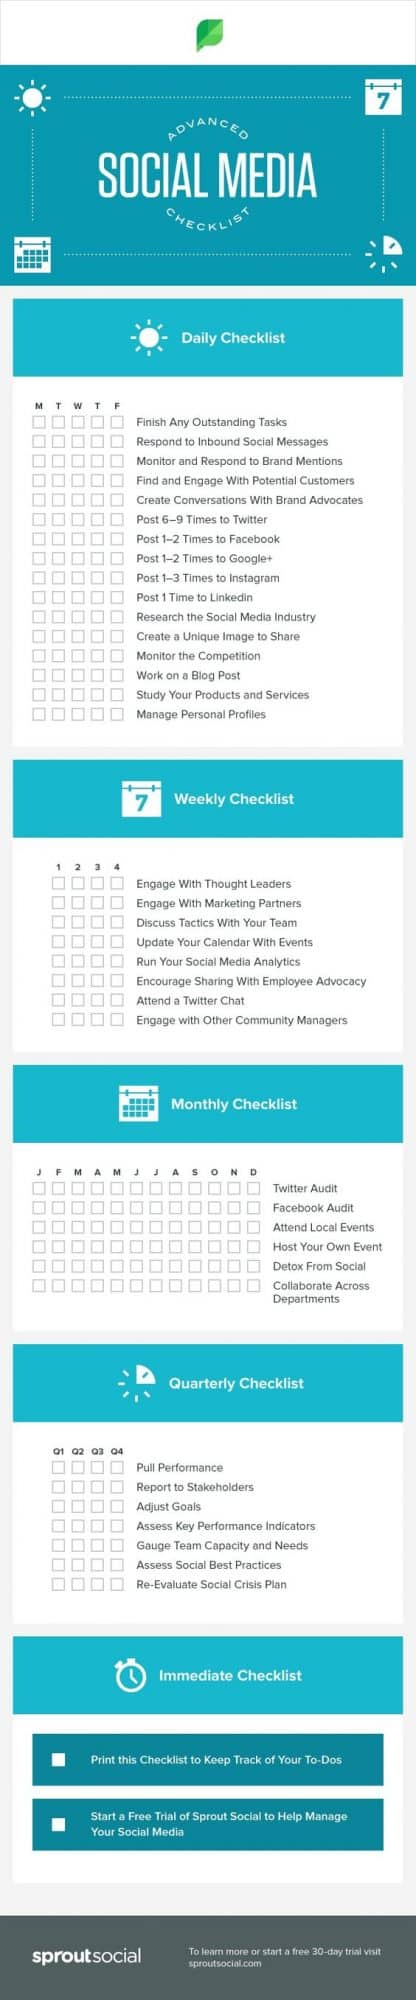 advanced-social-media-checklist-infographic